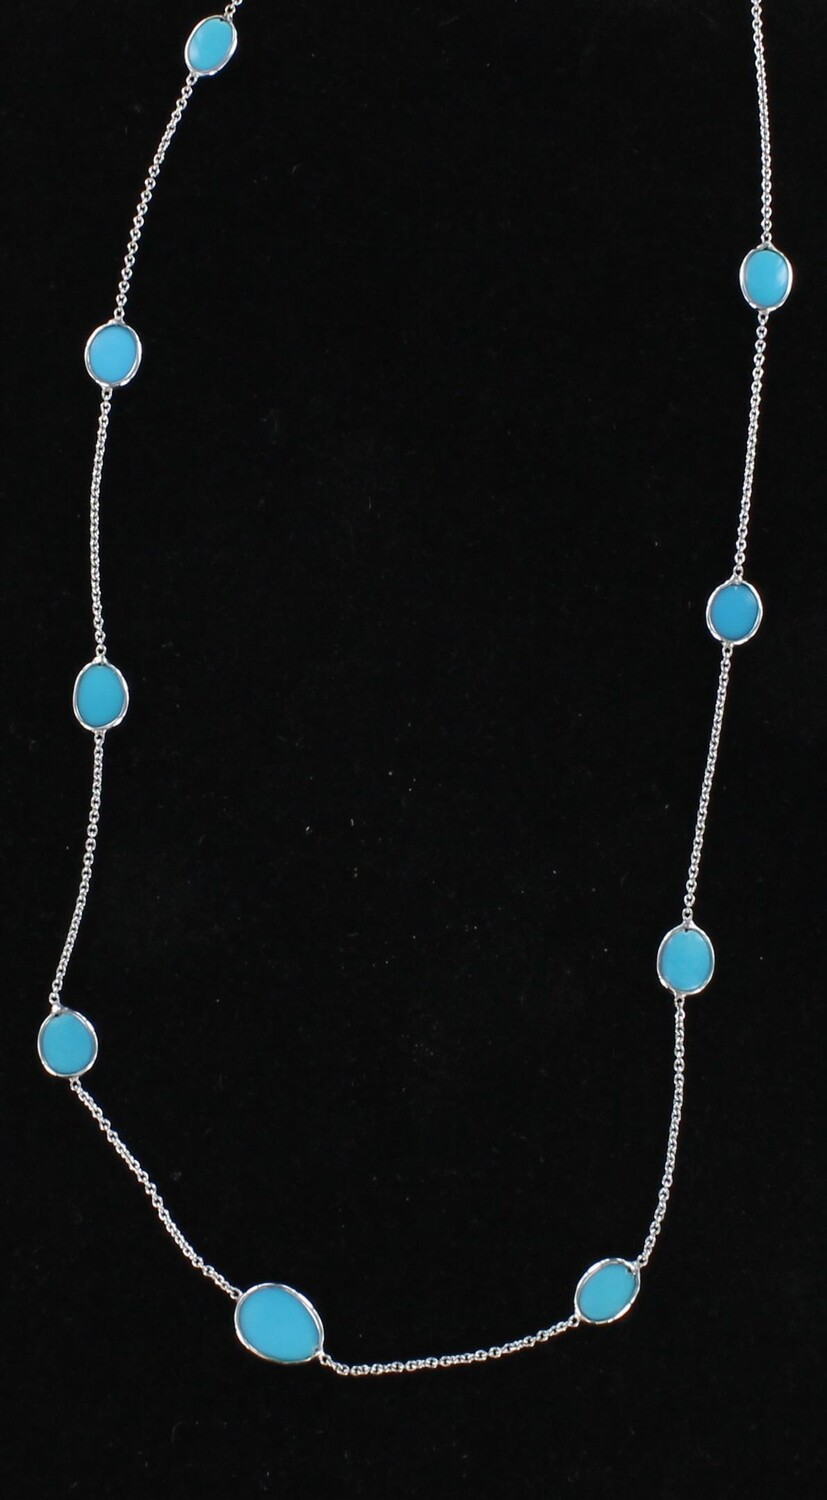 18KT WHITE GOLD TURQUOISE BY THE YARD CHAIN